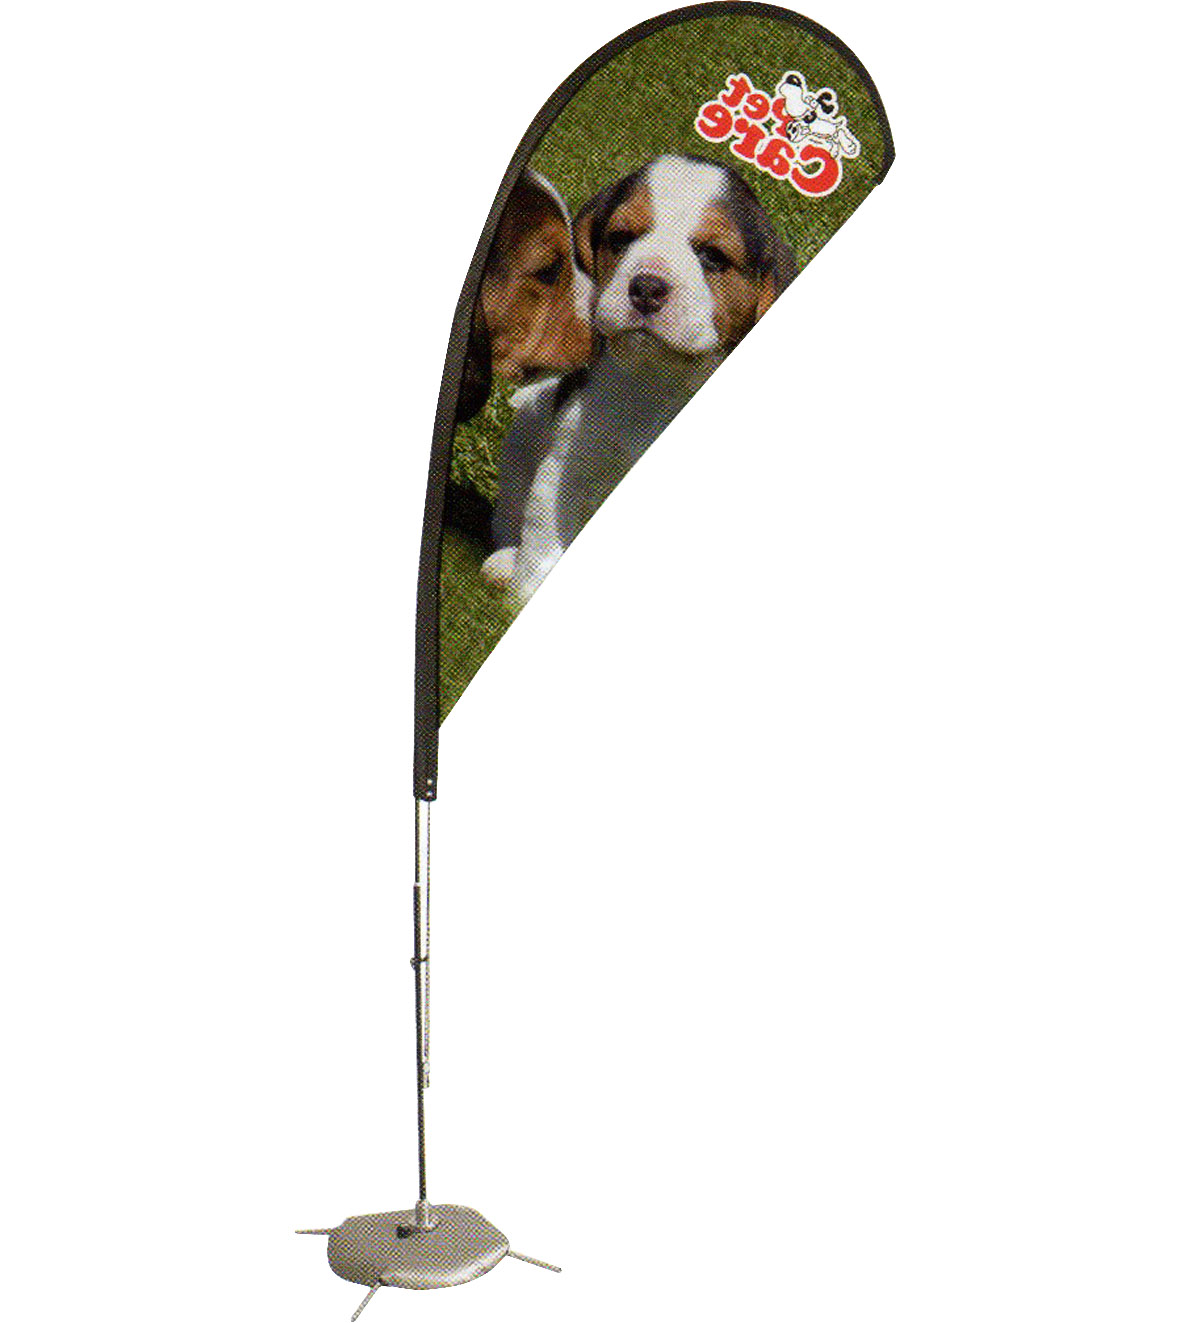 Feather Flag Stand, Shore Placard Ensign, Coast Daybill Standard